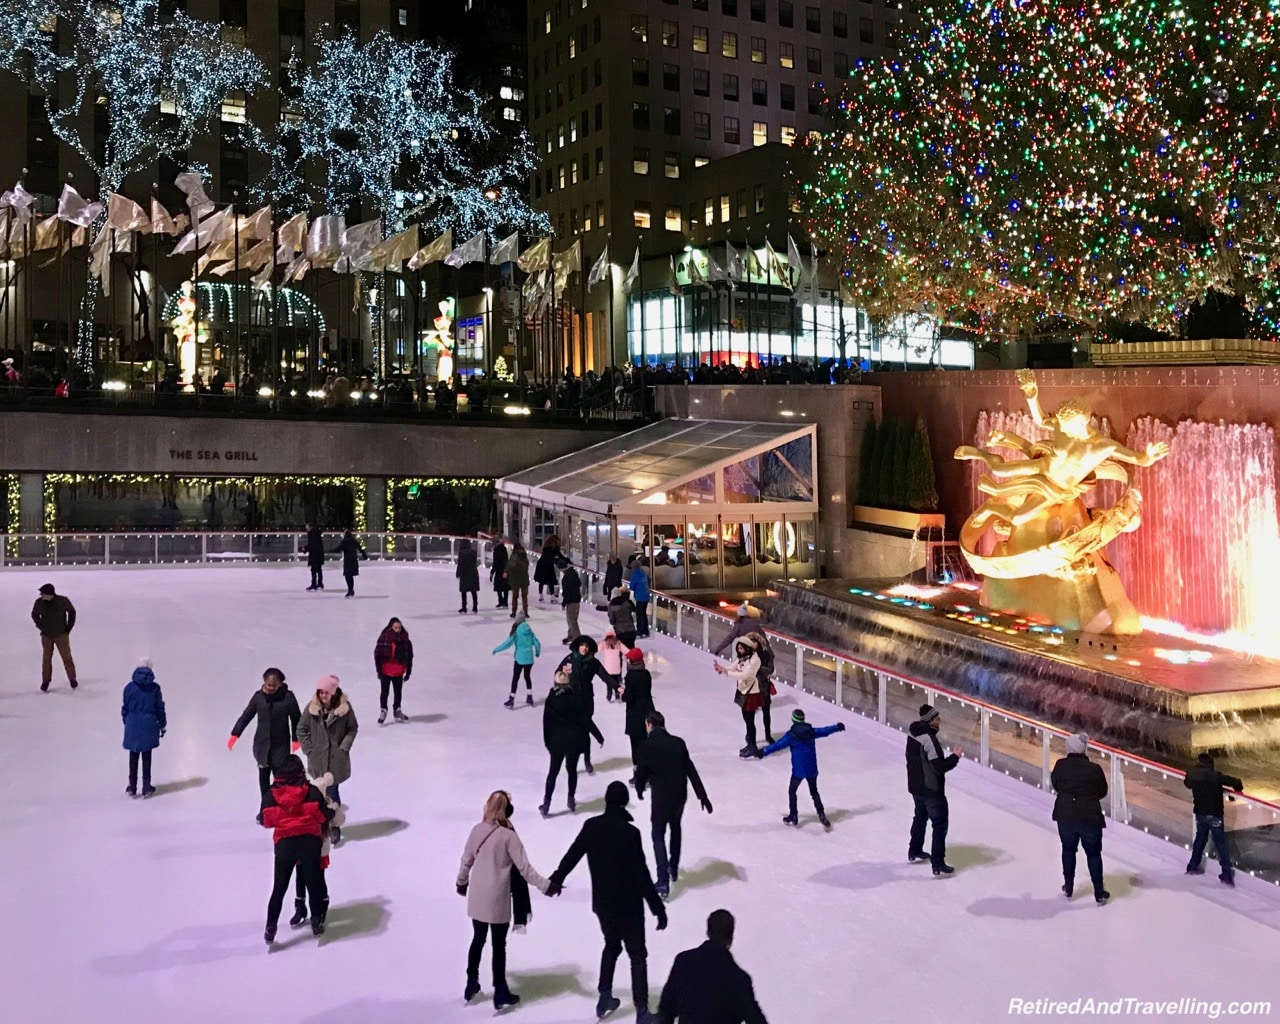 Skating Rockefeller Centre Christmas Tree and Decor - Holiday Visit To NYC.jpg